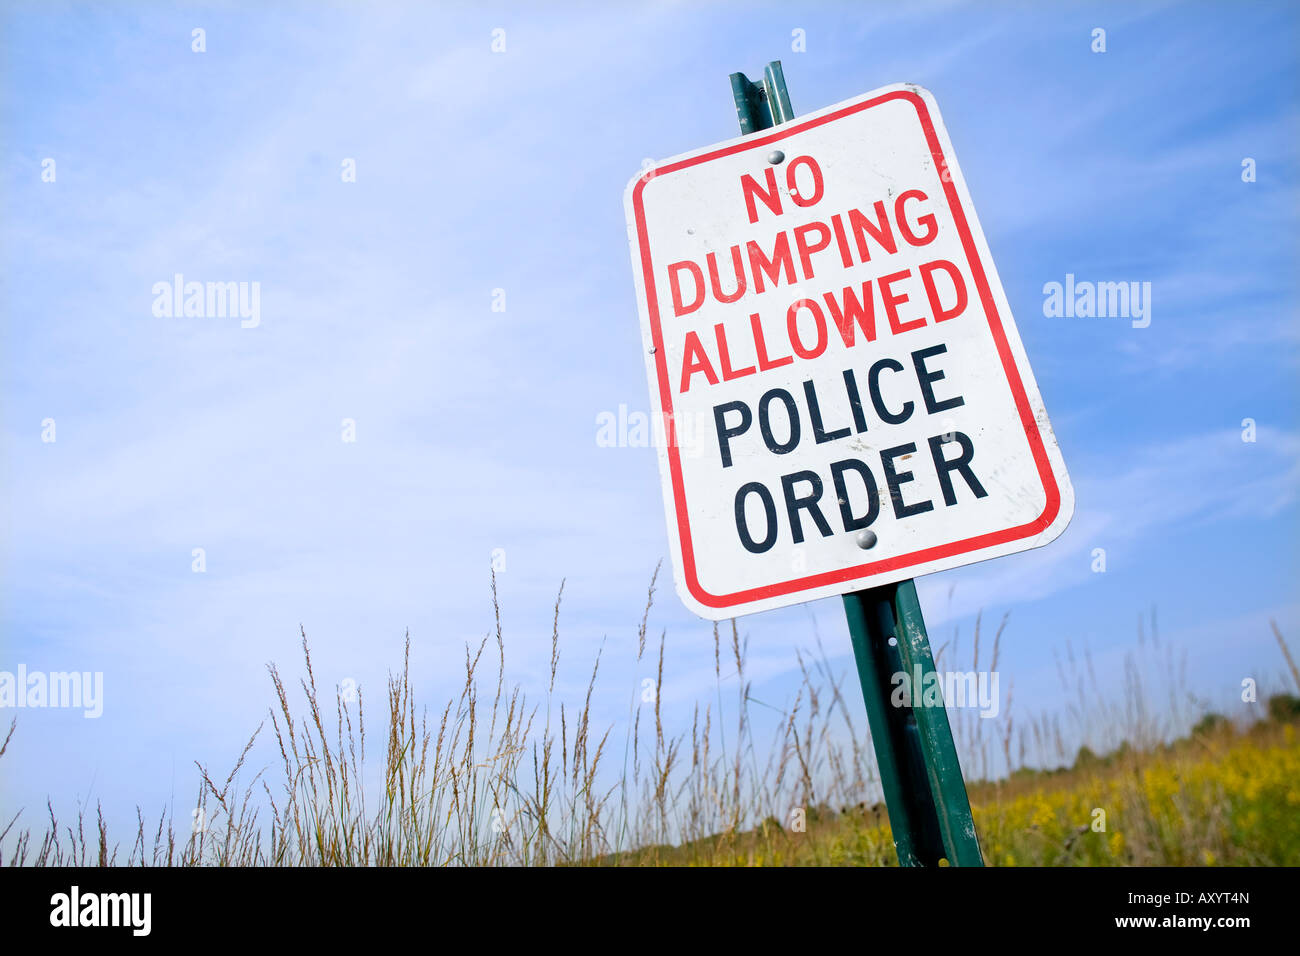 No Dumping Allowed Police Order Sign in prairie grasses Stock Photo